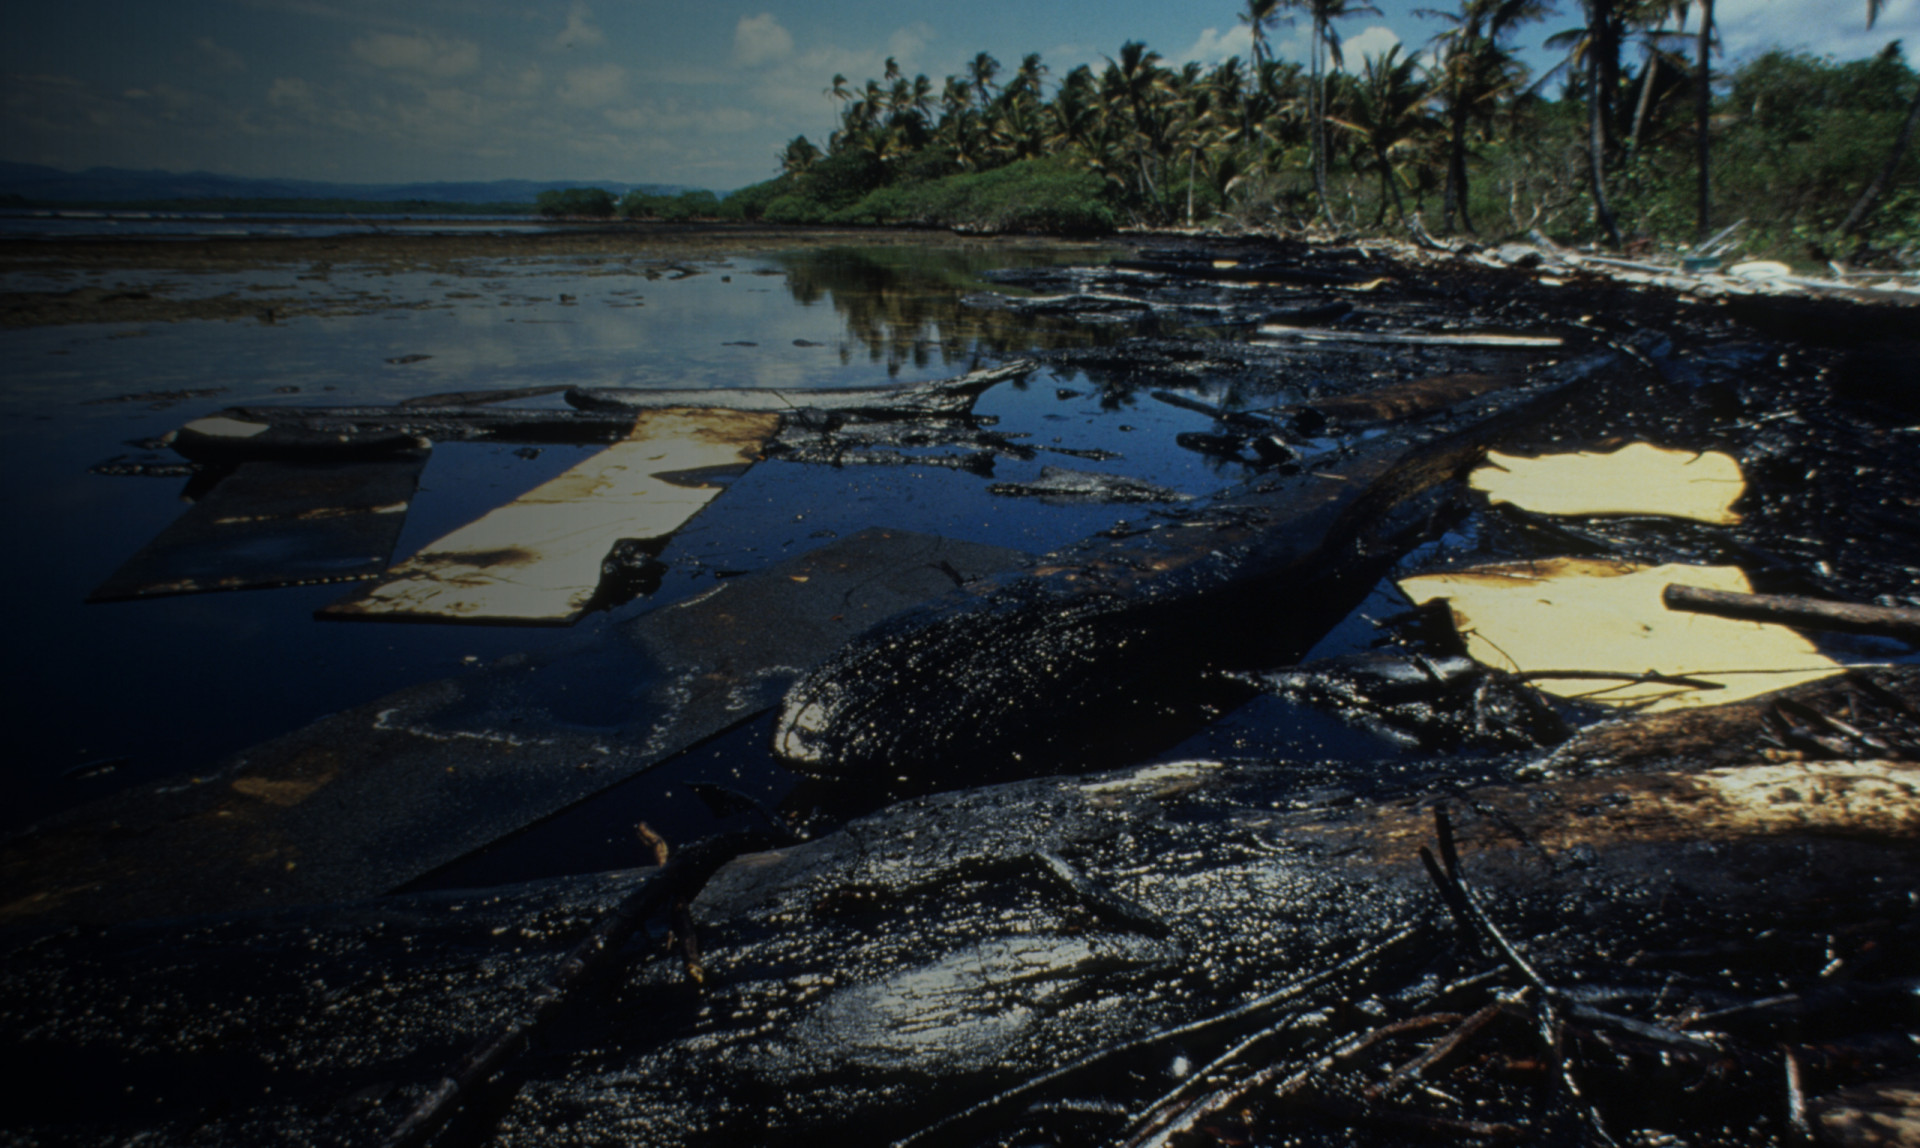 The breakup of the tanker Witwater spilled 14,000 barrels of diesel oil and Bunker C near Galeta. Eighteen years later, 75,000 barrels of crude oil spills was spilled near the station